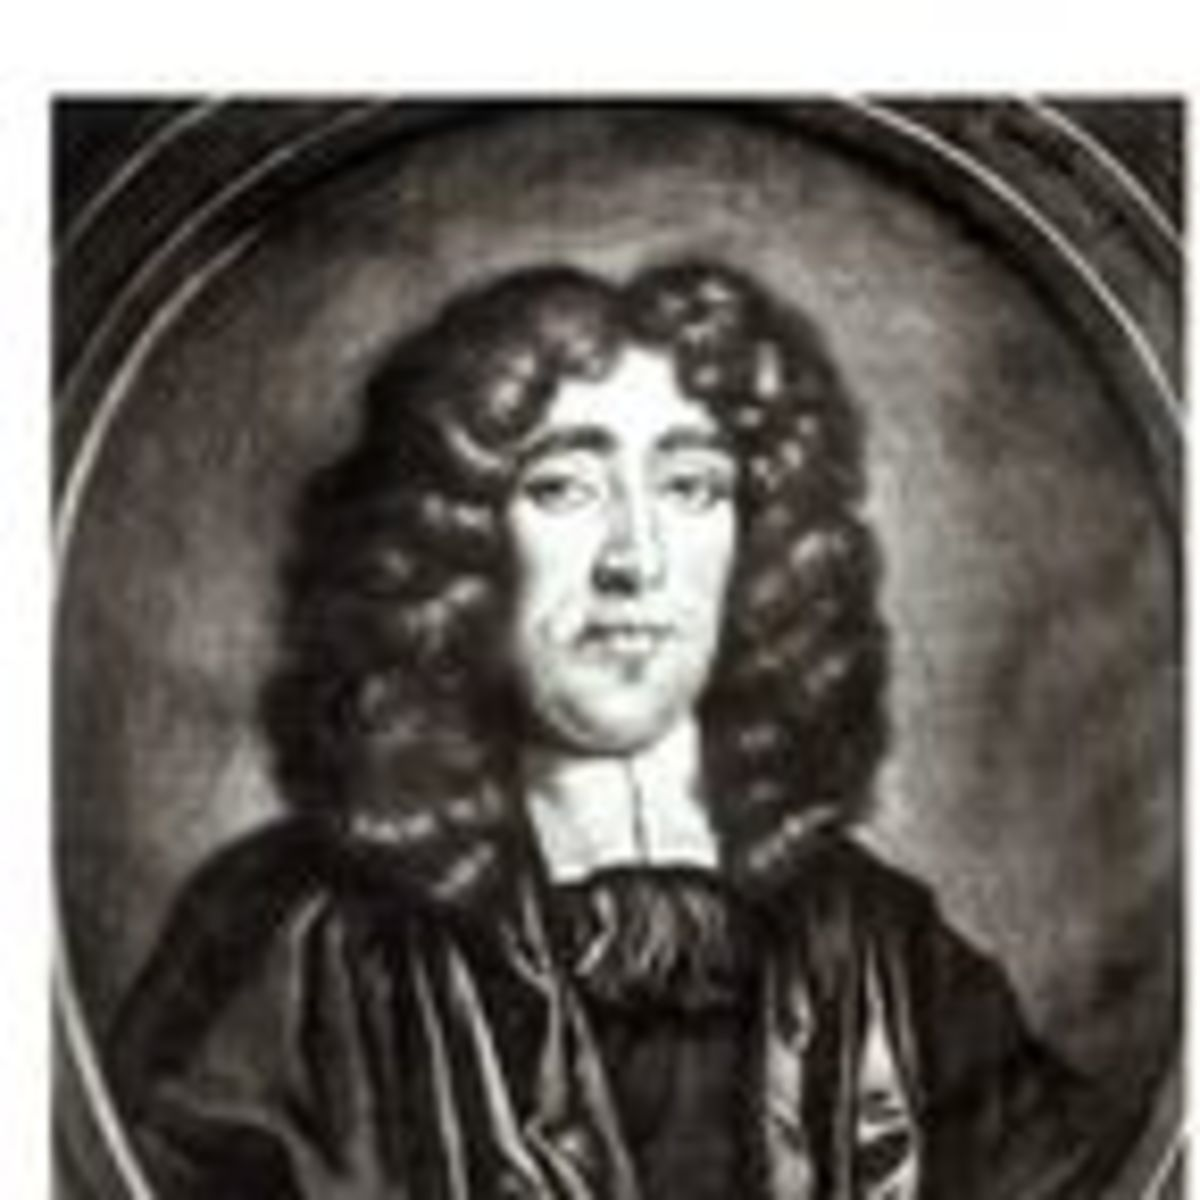 Before There Was Donald Trump, There Was Titus Oates